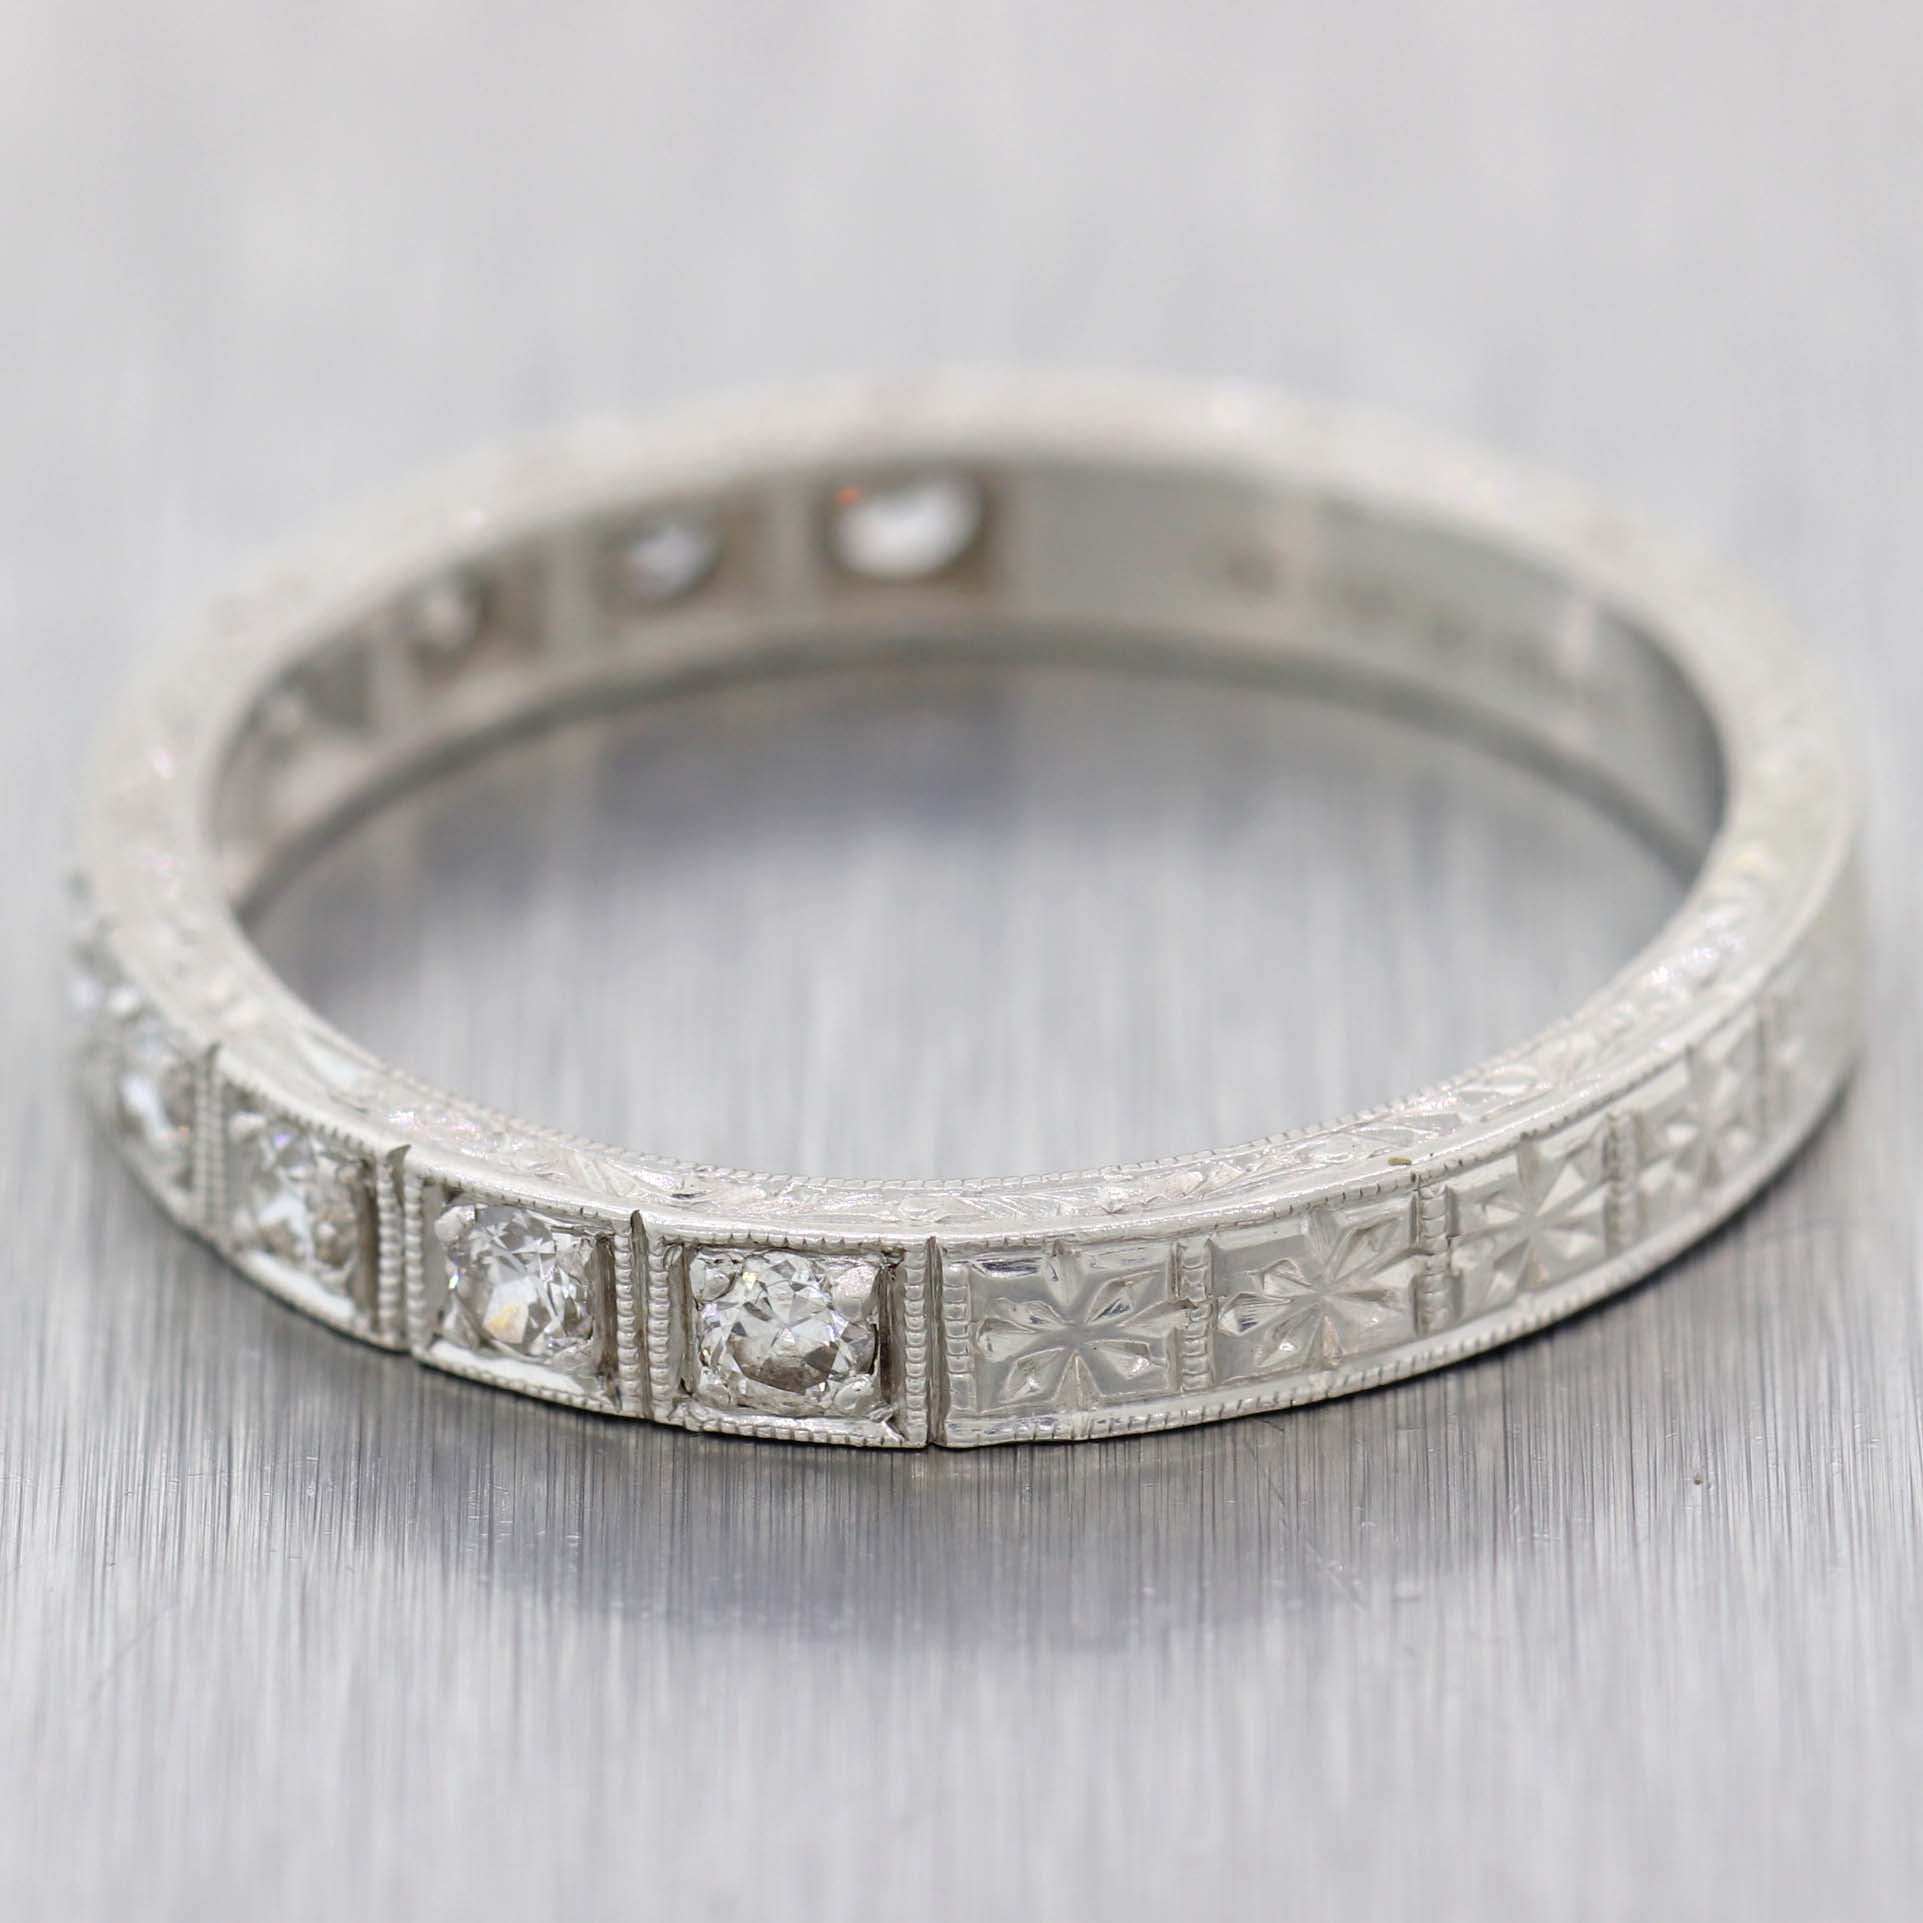 1930s Antique Art Deco Platinum Engraved .50ctw Diamond 3mm Wedding Band Ring D8